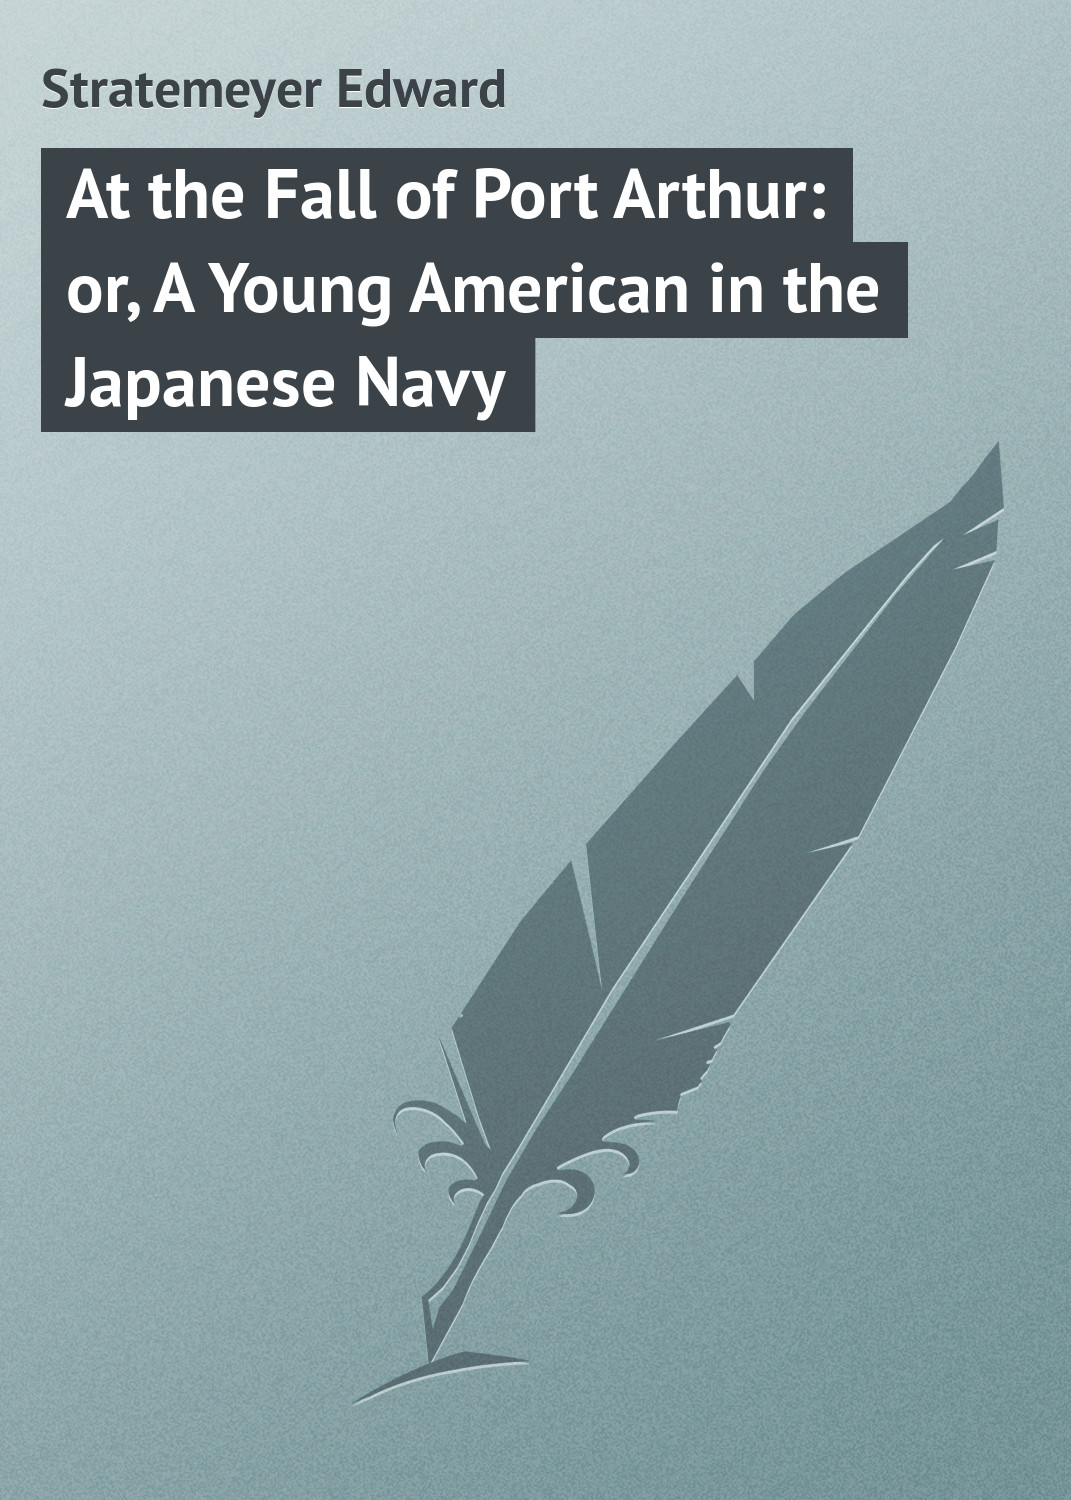 Stratemeyer Edward At the Fall of Port Arthur: or, A Young American in the Japanese Navy